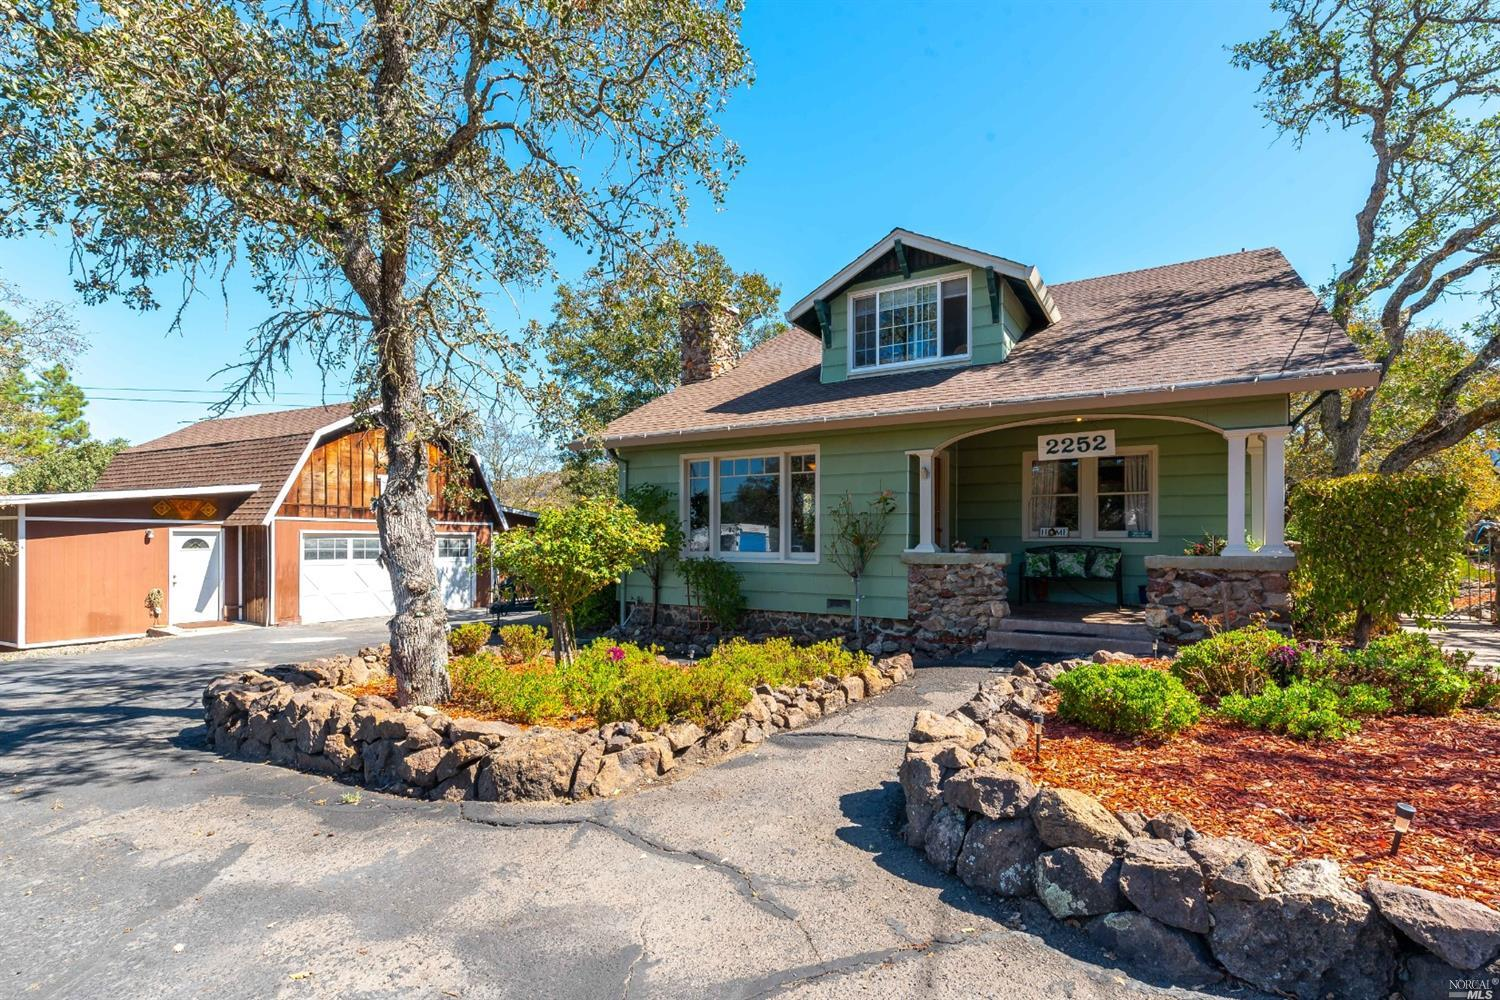 Photo of 2252 1st Avenue, Napa, CA 94558